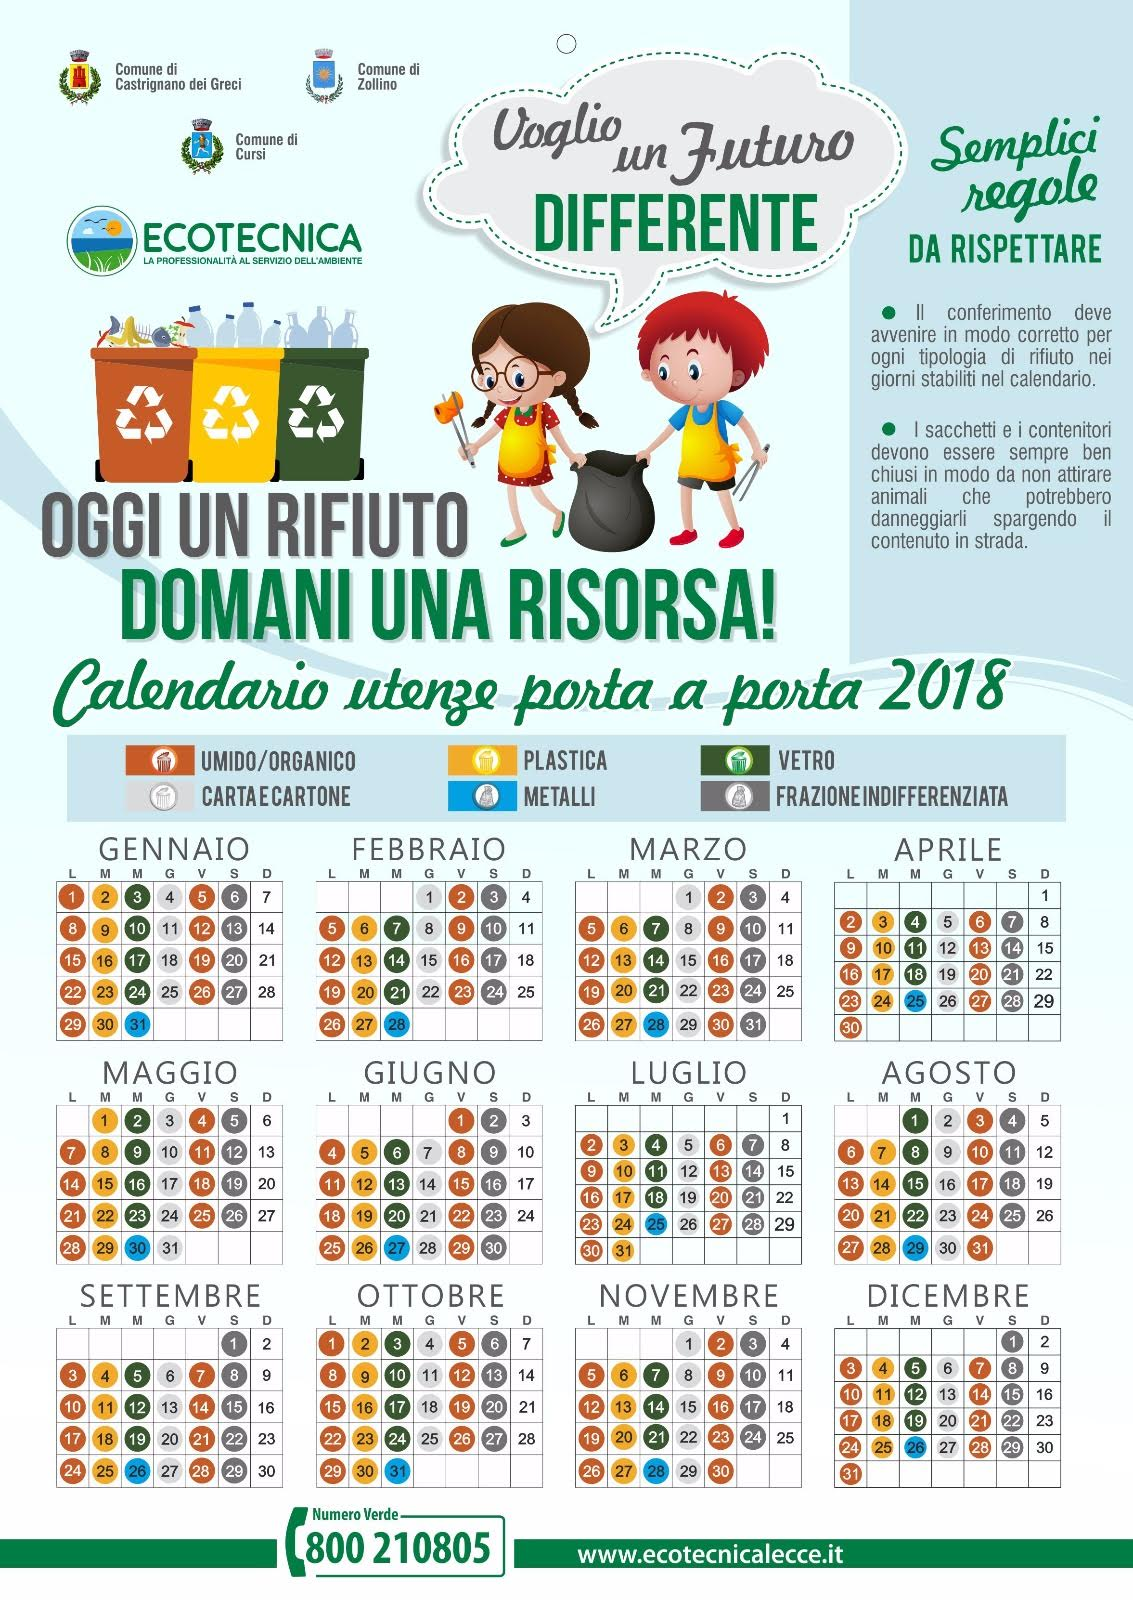 Calendario Differenziata.Raccolta Differenziata Comune Di Cursi